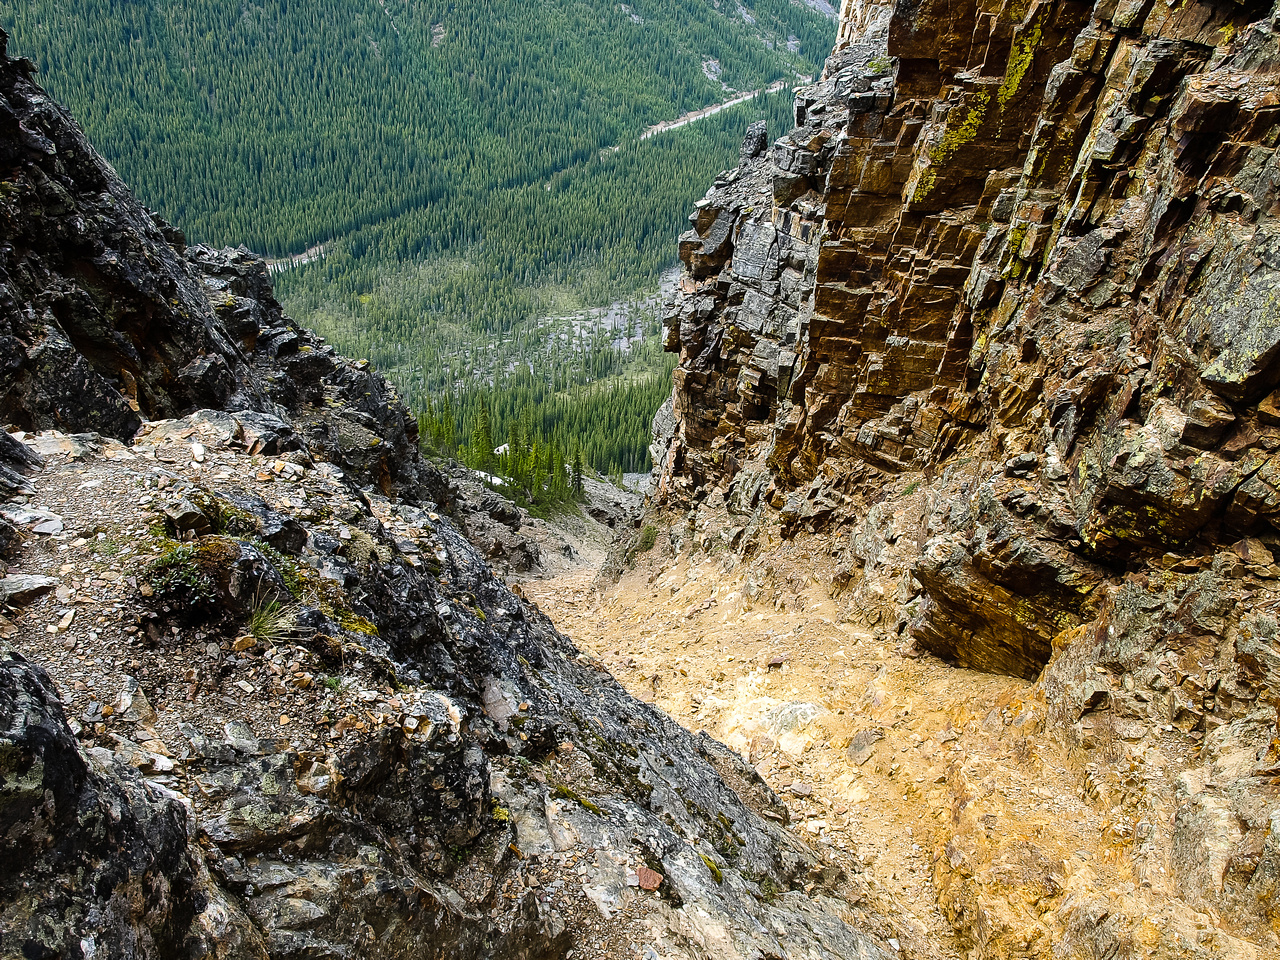 You want to move quickly up this gully! Lots of rock fall potential. Personally I feel this is 'moderate' terrain, not 'easy'.